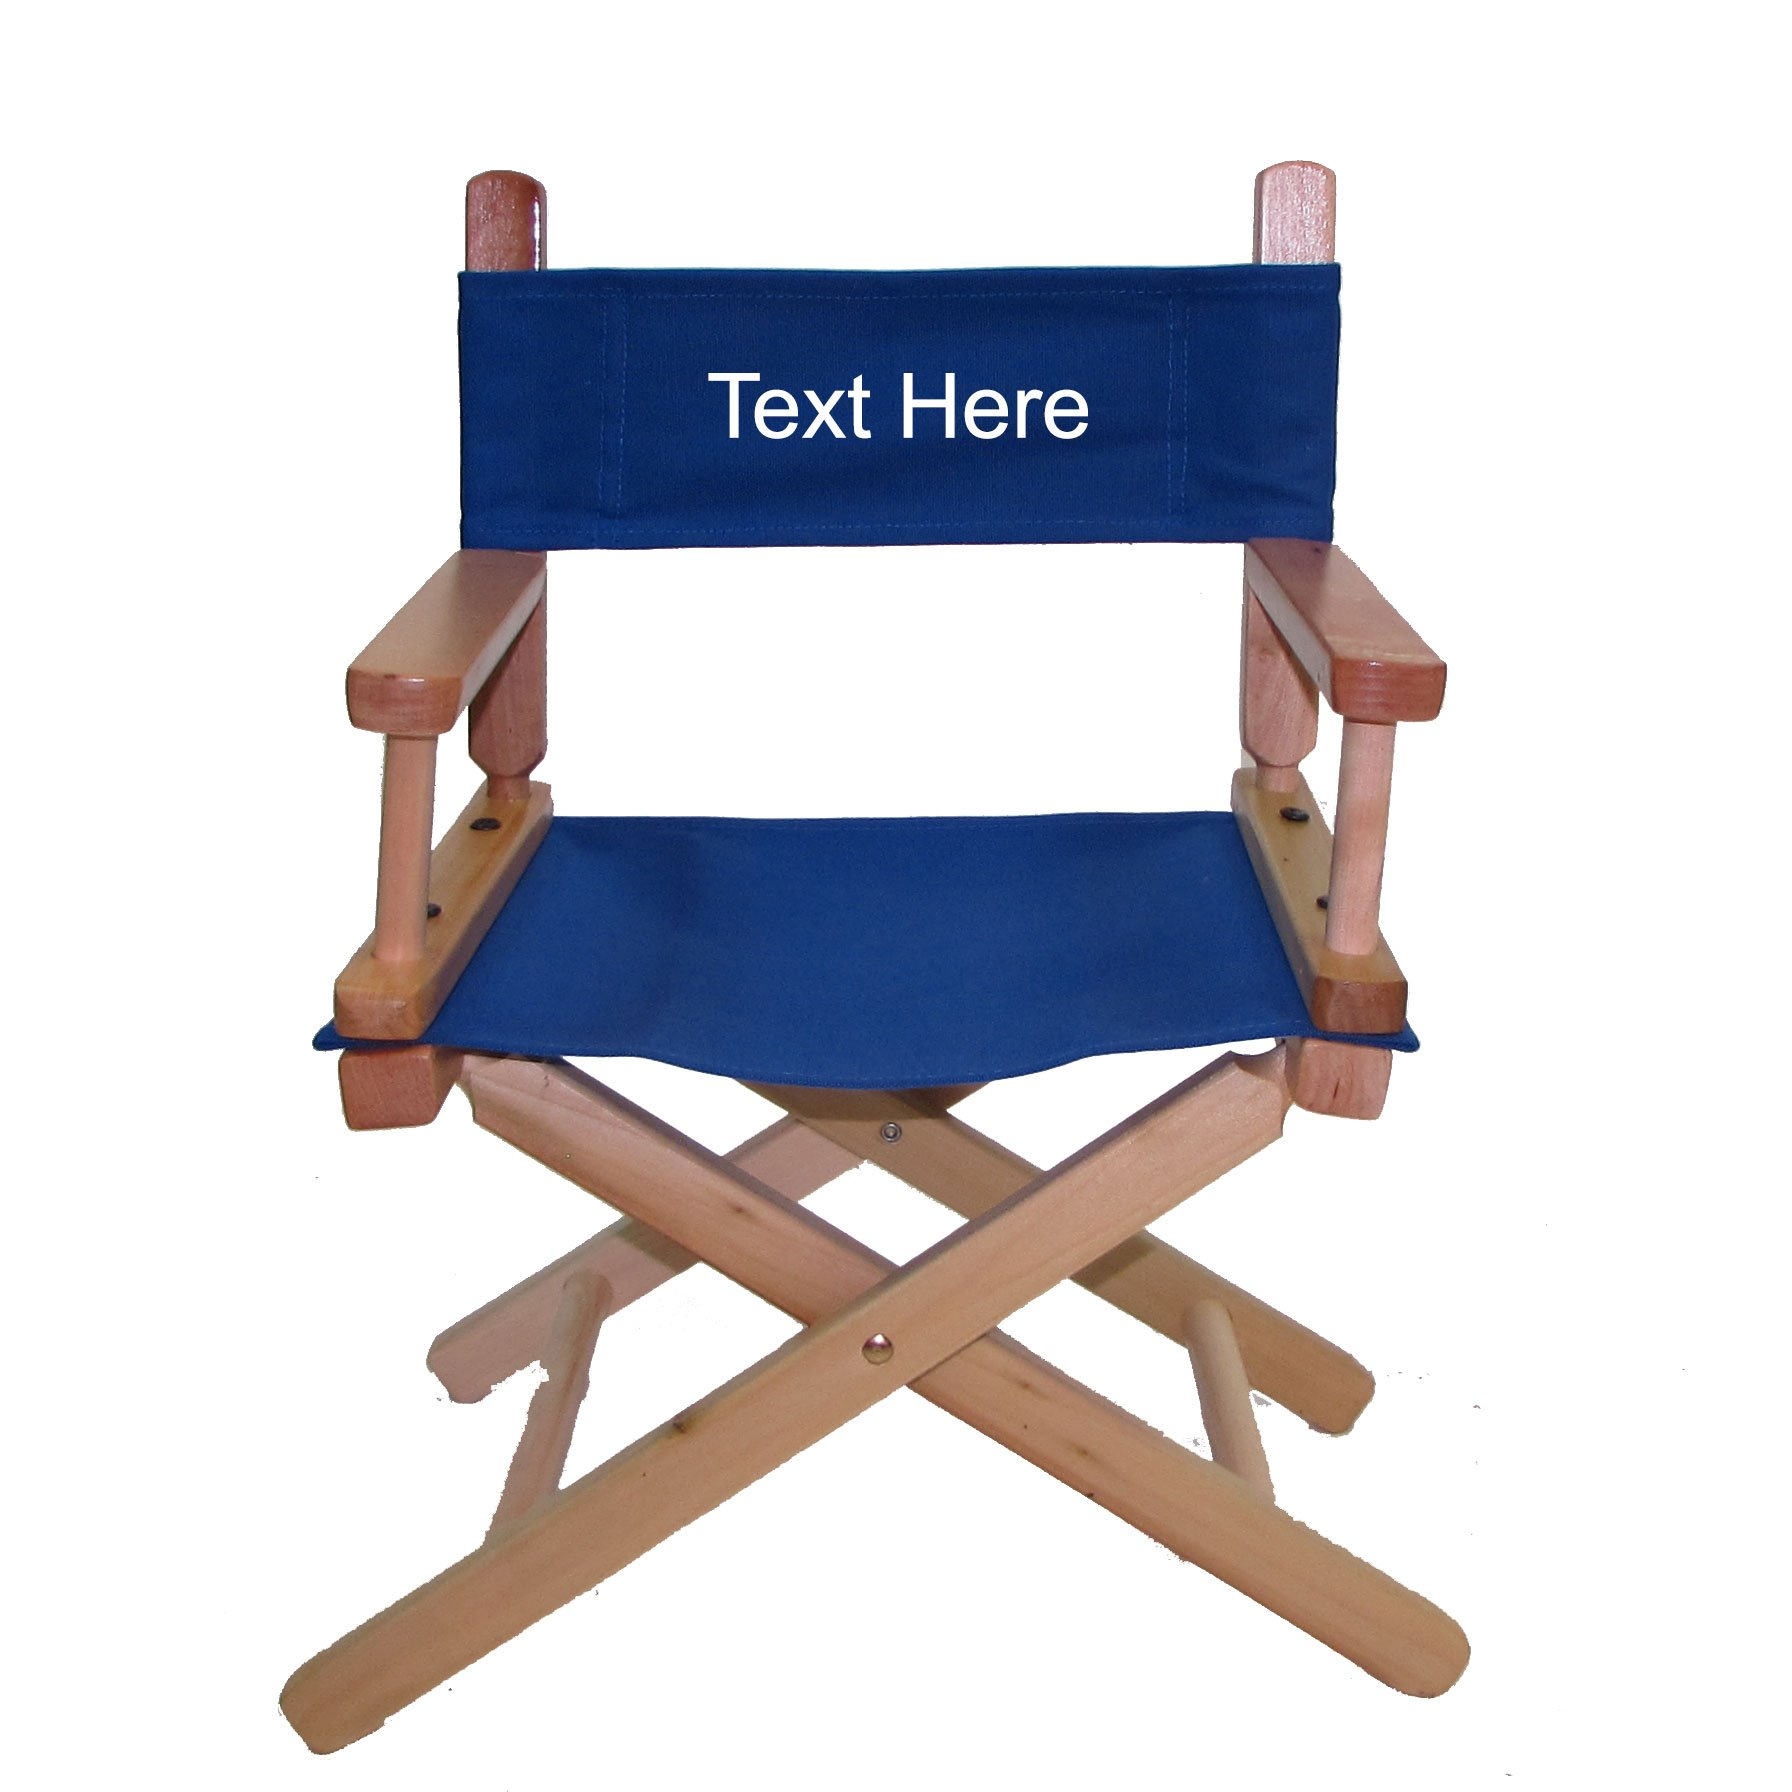 Personalized Embroidered Natural Frame Toddler's Directors Chair by Gold Medal - Royal Blue Canvas by TLT